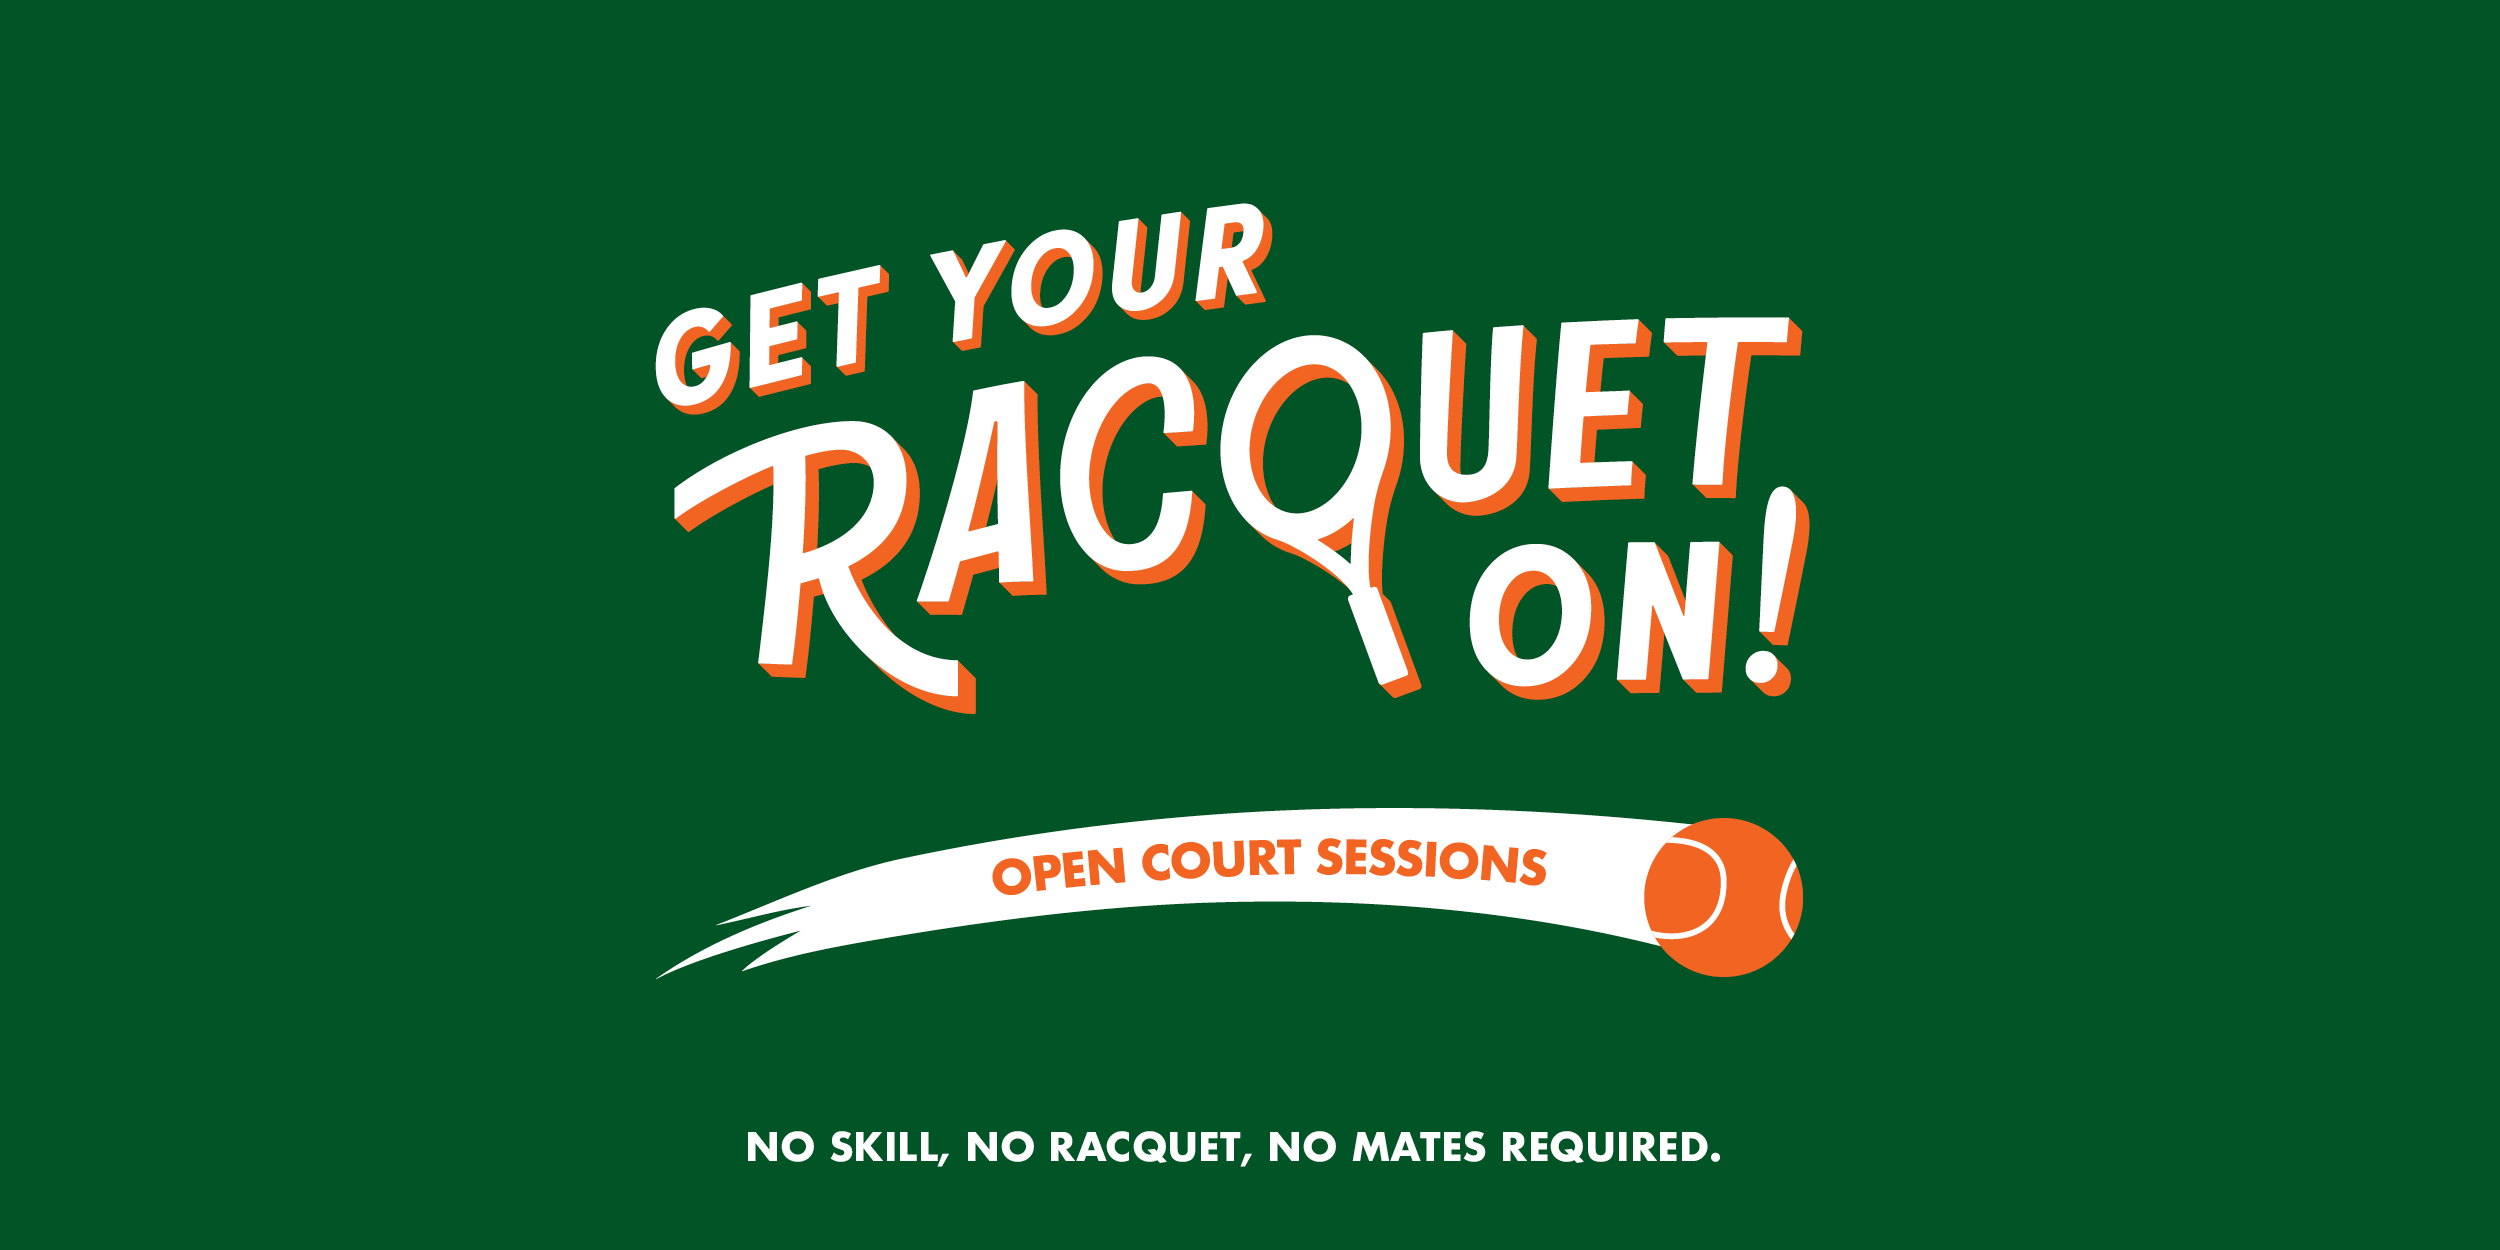 Book an Open Court Session Here